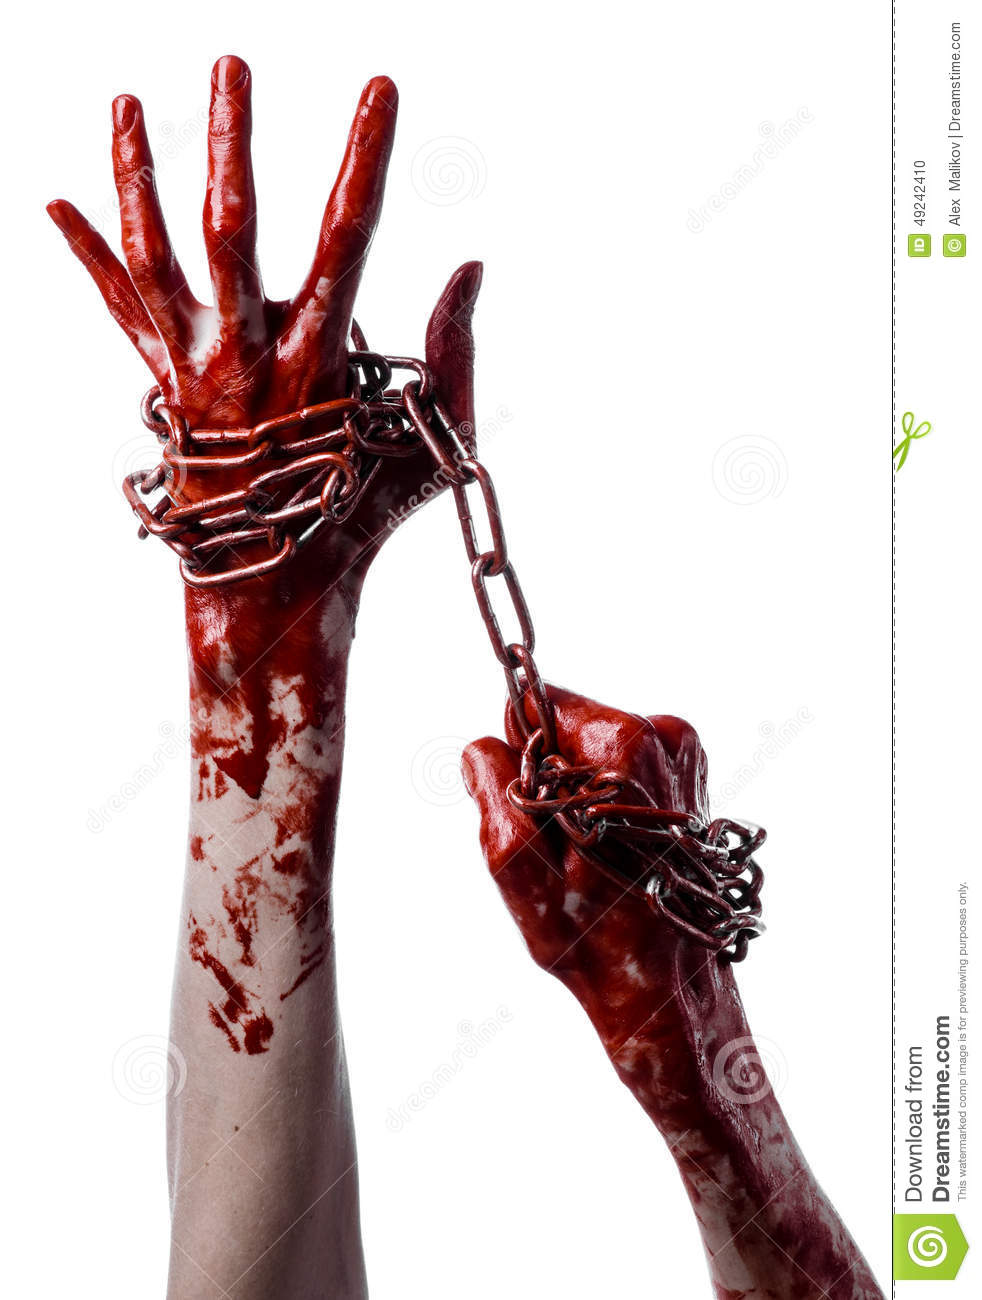 bloody hand holding - photo #16